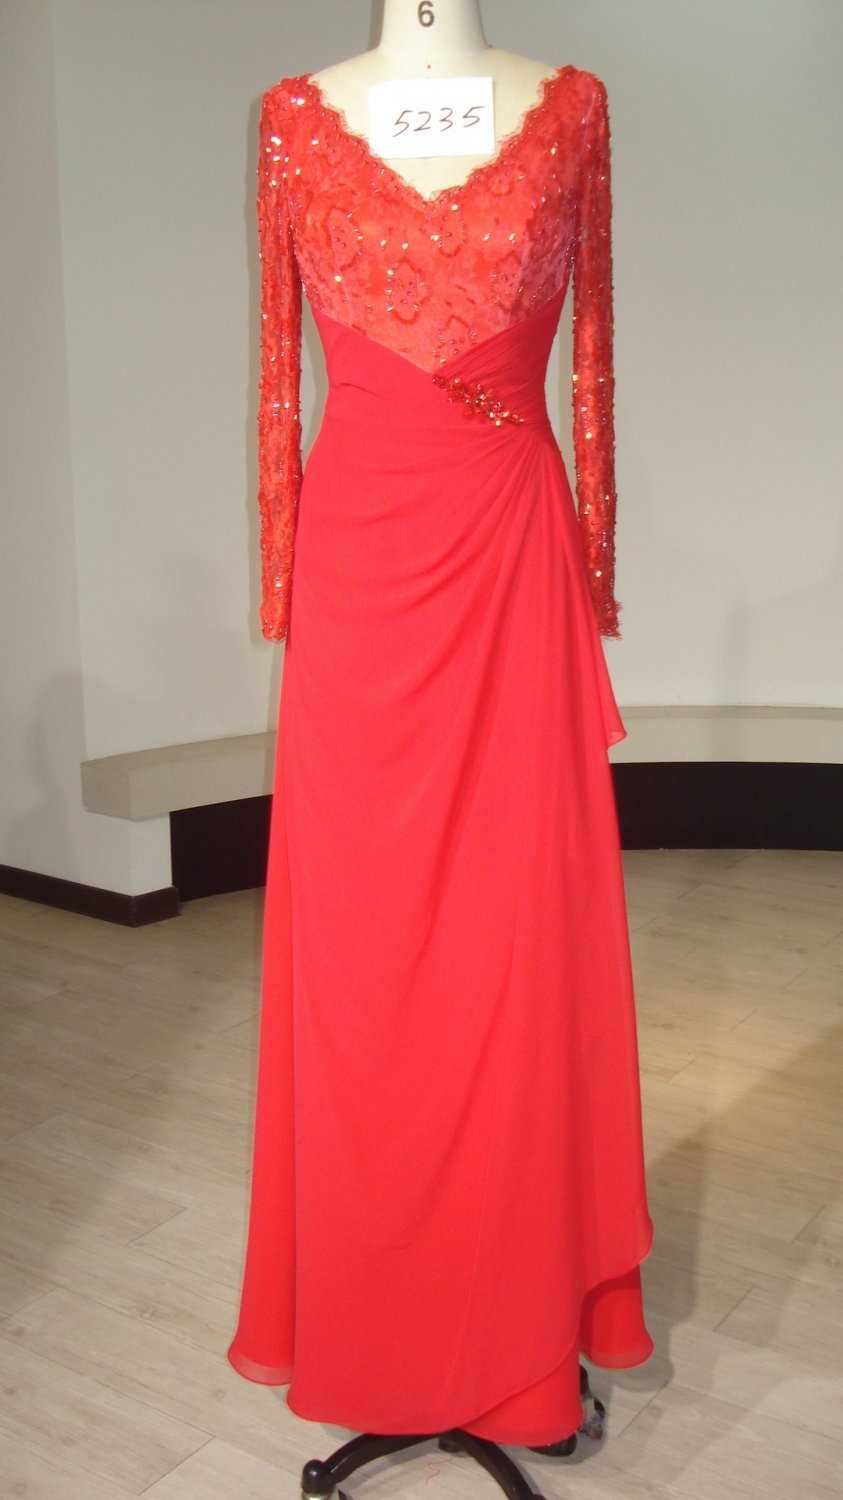 Style 5235 - Long Sleeve Mother of the Bride Evening Dresses